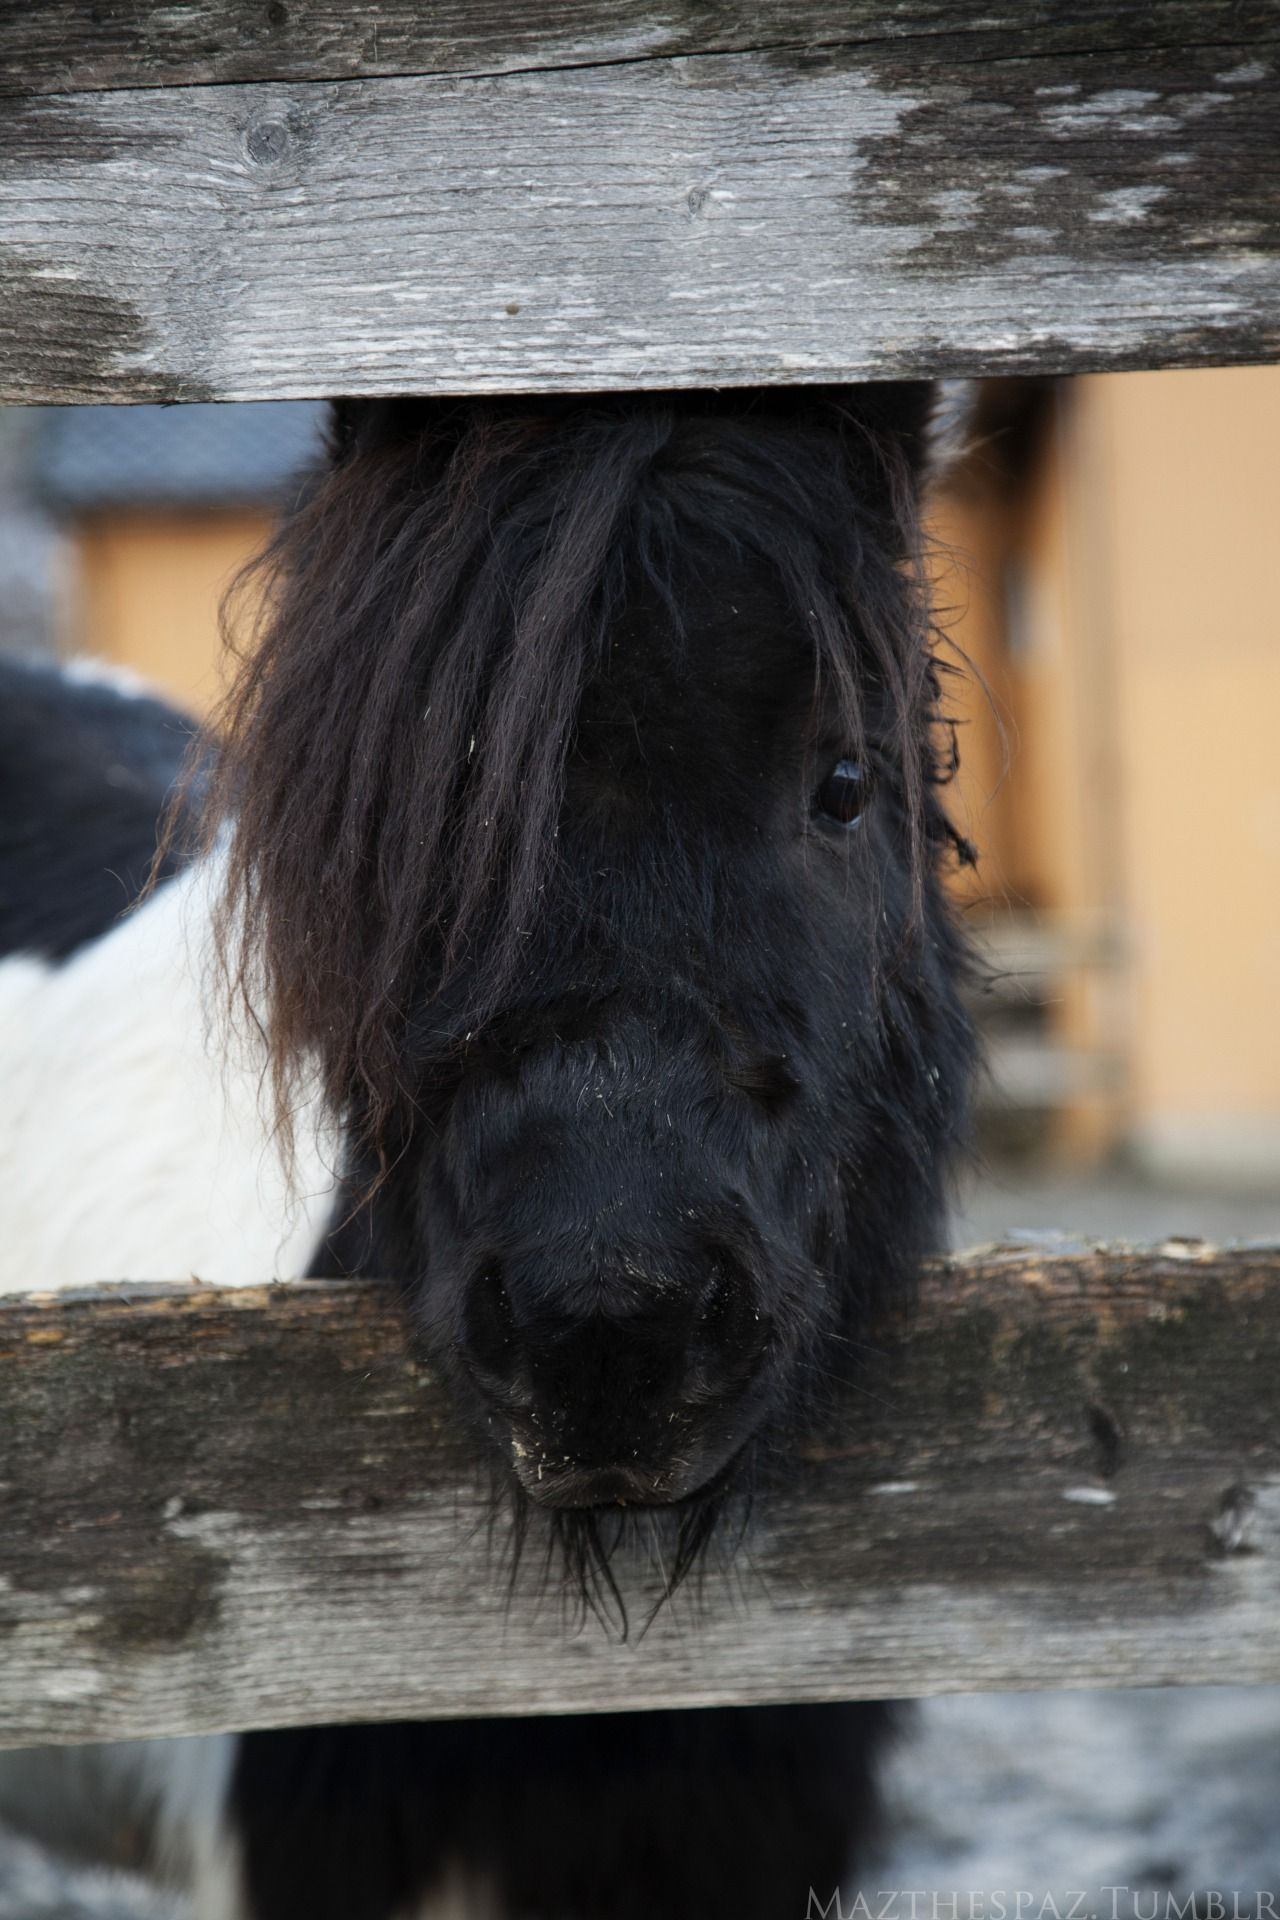 Sweet little guy (With images) Horses, Cute horses, Cute